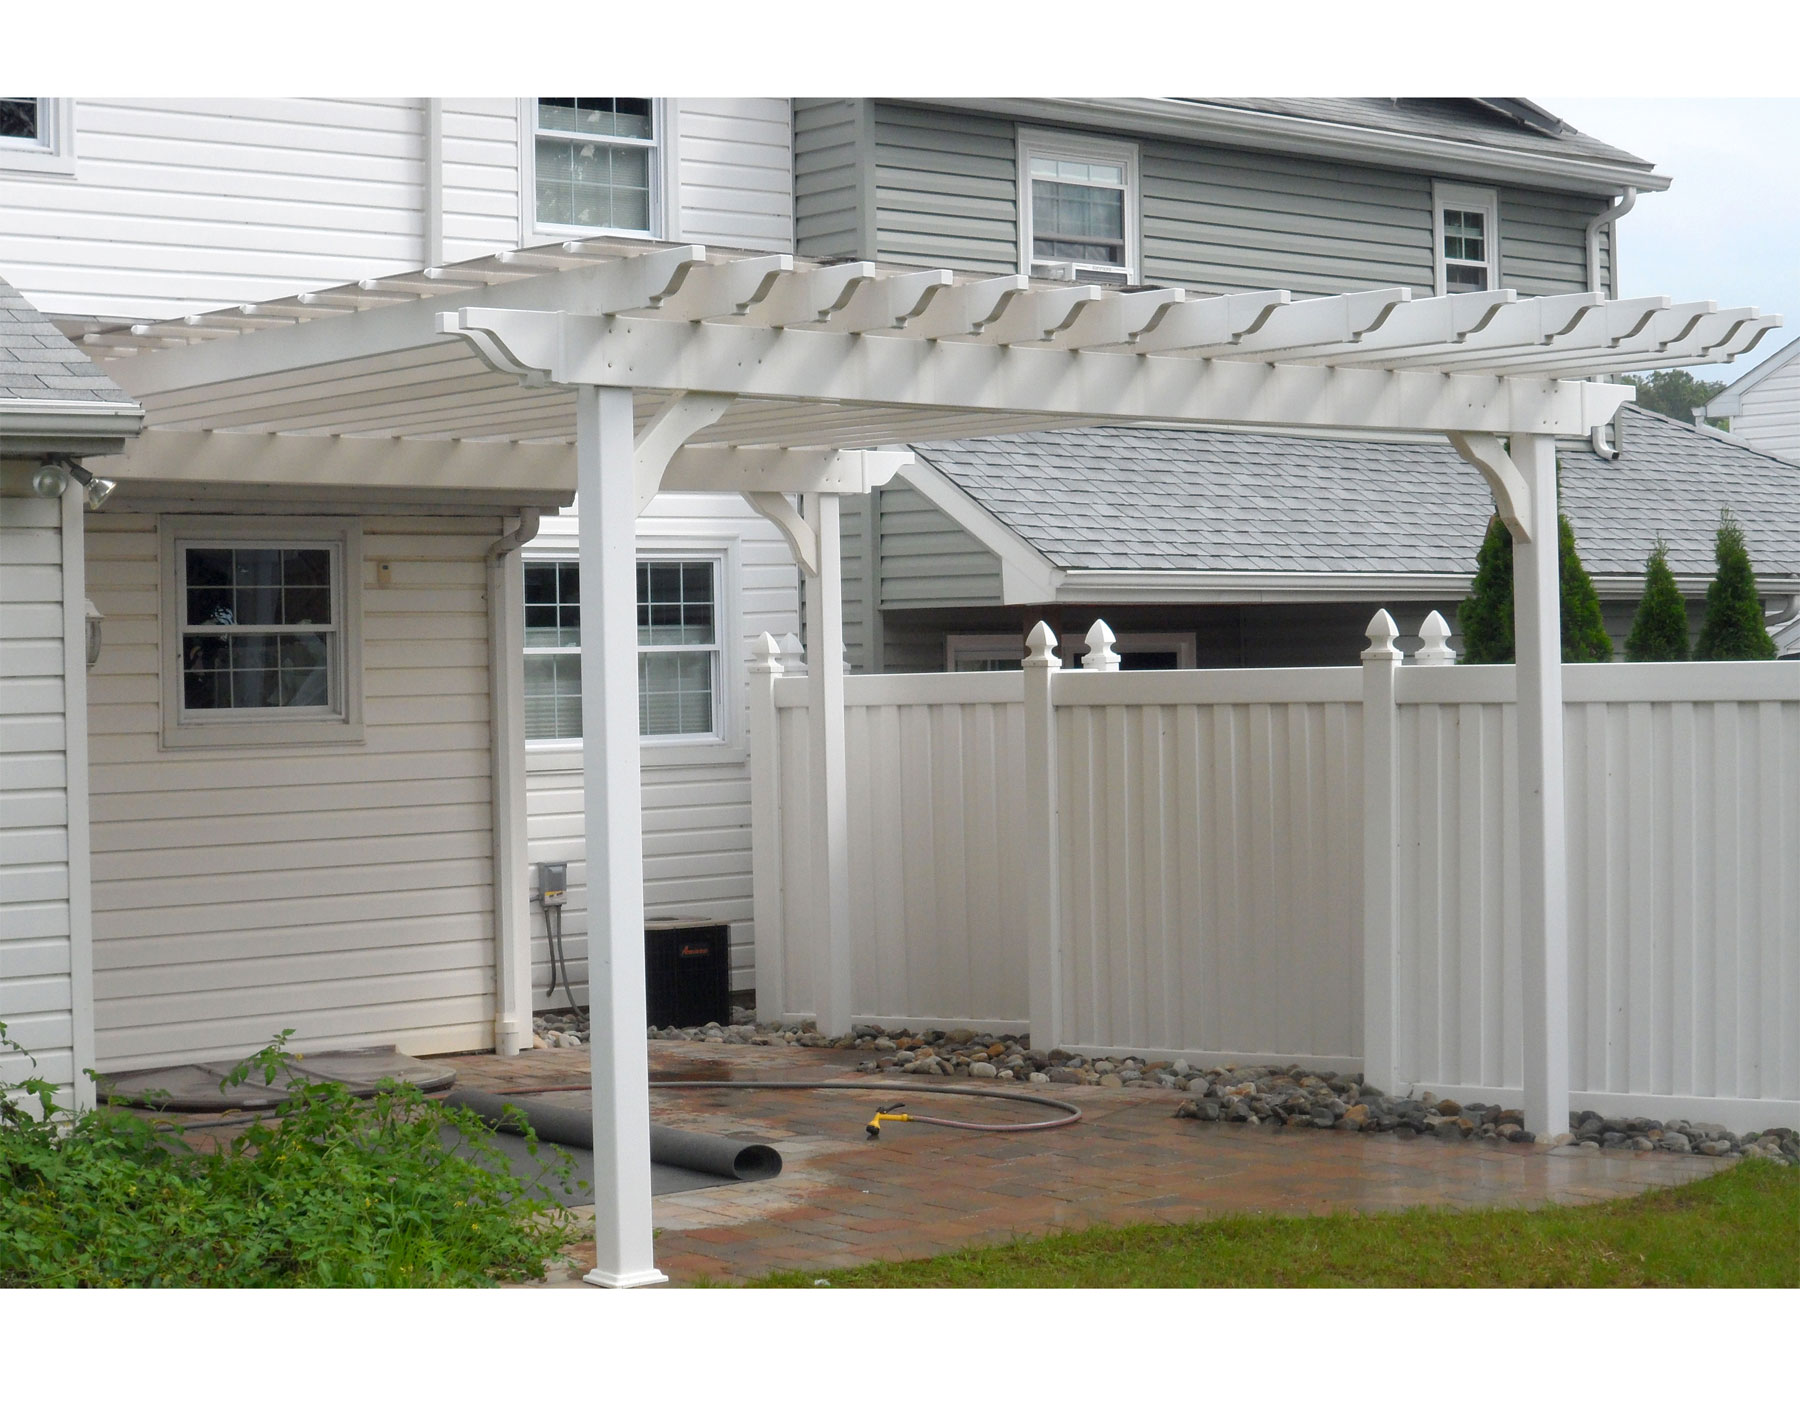 Customer 39 s photo 12 39 x 16 39 vinyl 2 beam pergola for Pergola aluminium x